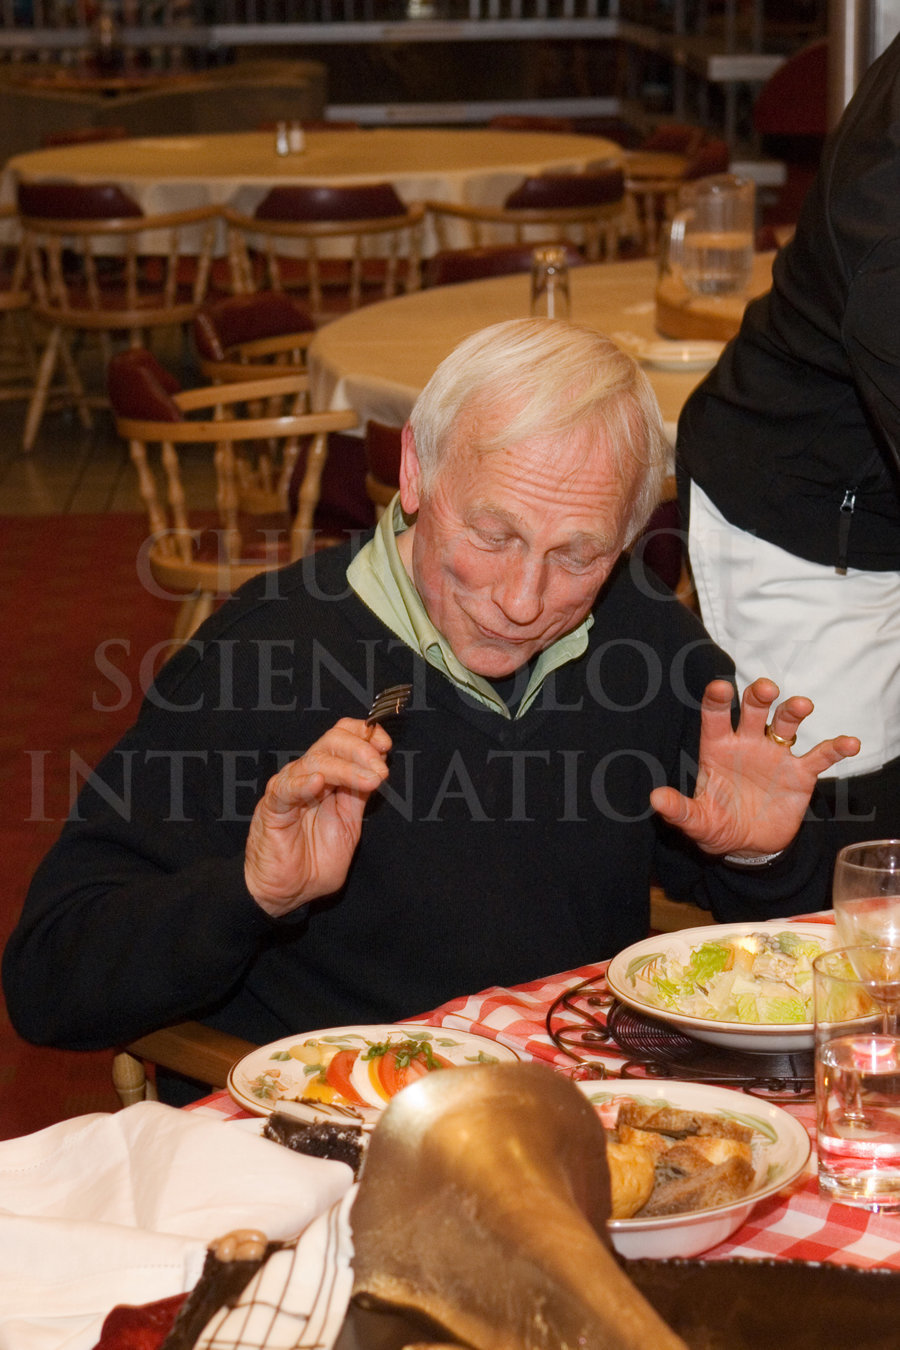 Ron Miscavige Birthday with fork in hand